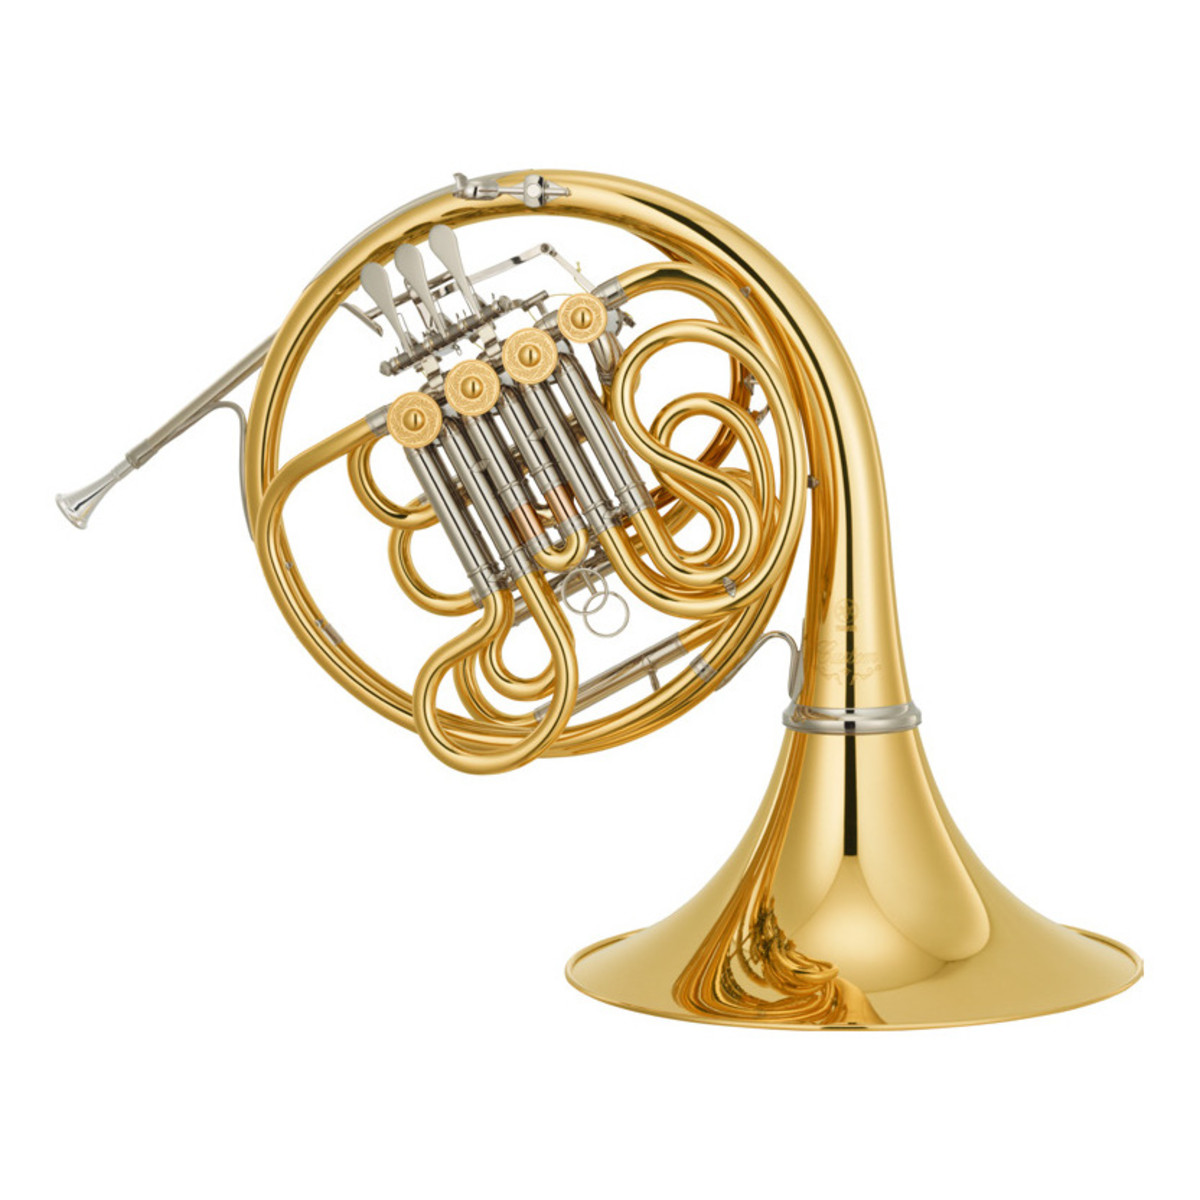 yamaha yhr671d professional series double french horn detachable bell at. Black Bedroom Furniture Sets. Home Design Ideas